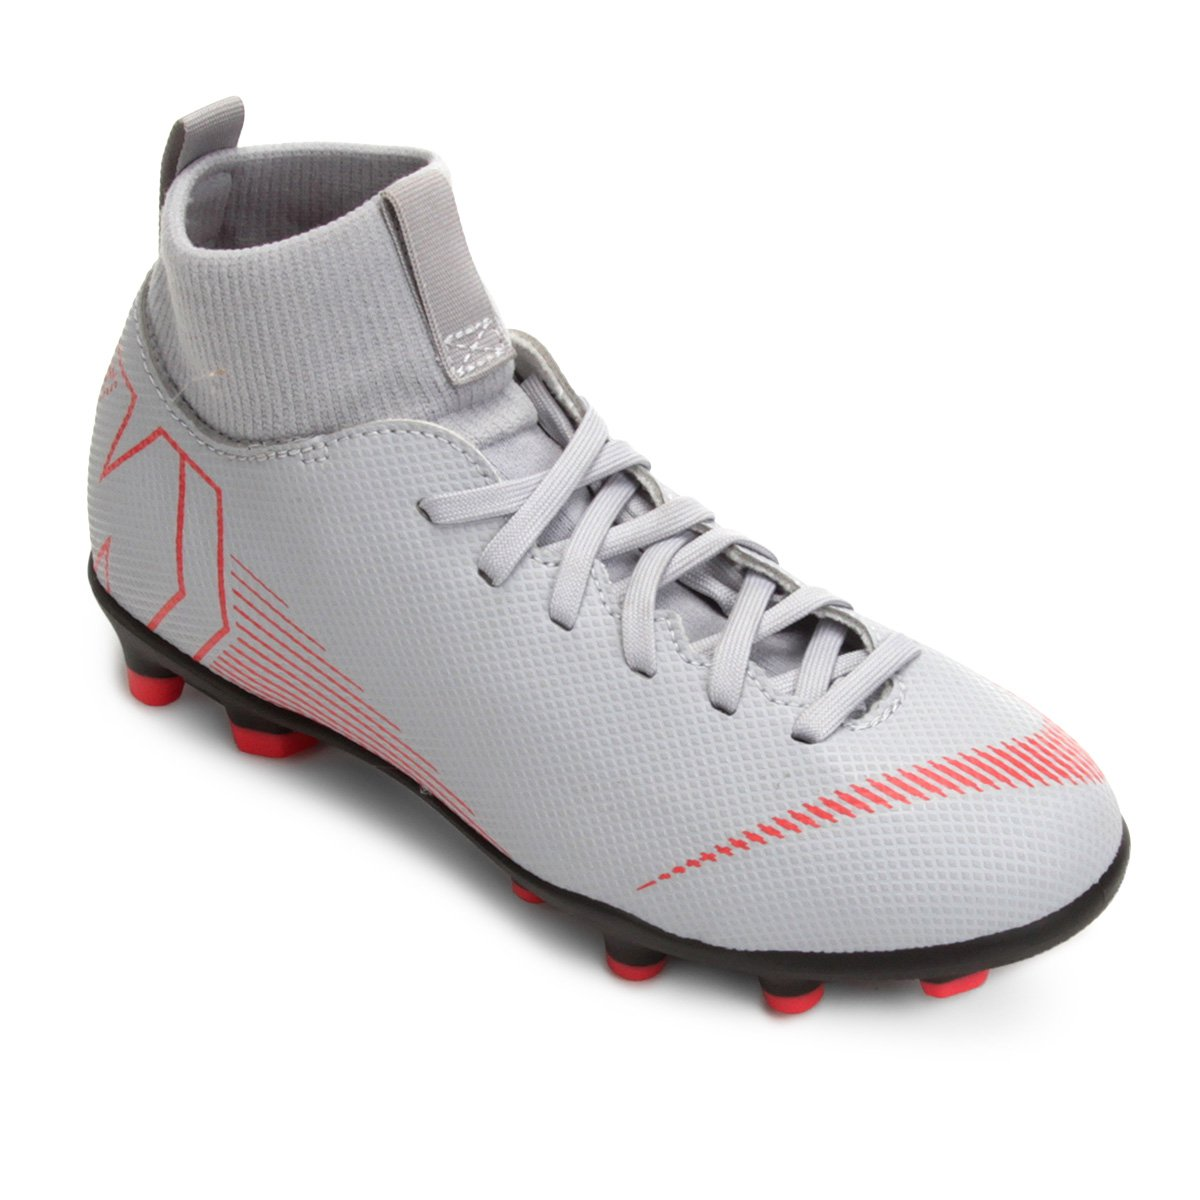 93a338641a real chuteira campo infantil nike mercurial superfly 6 club compre agora  netshoes 9bae2 34244